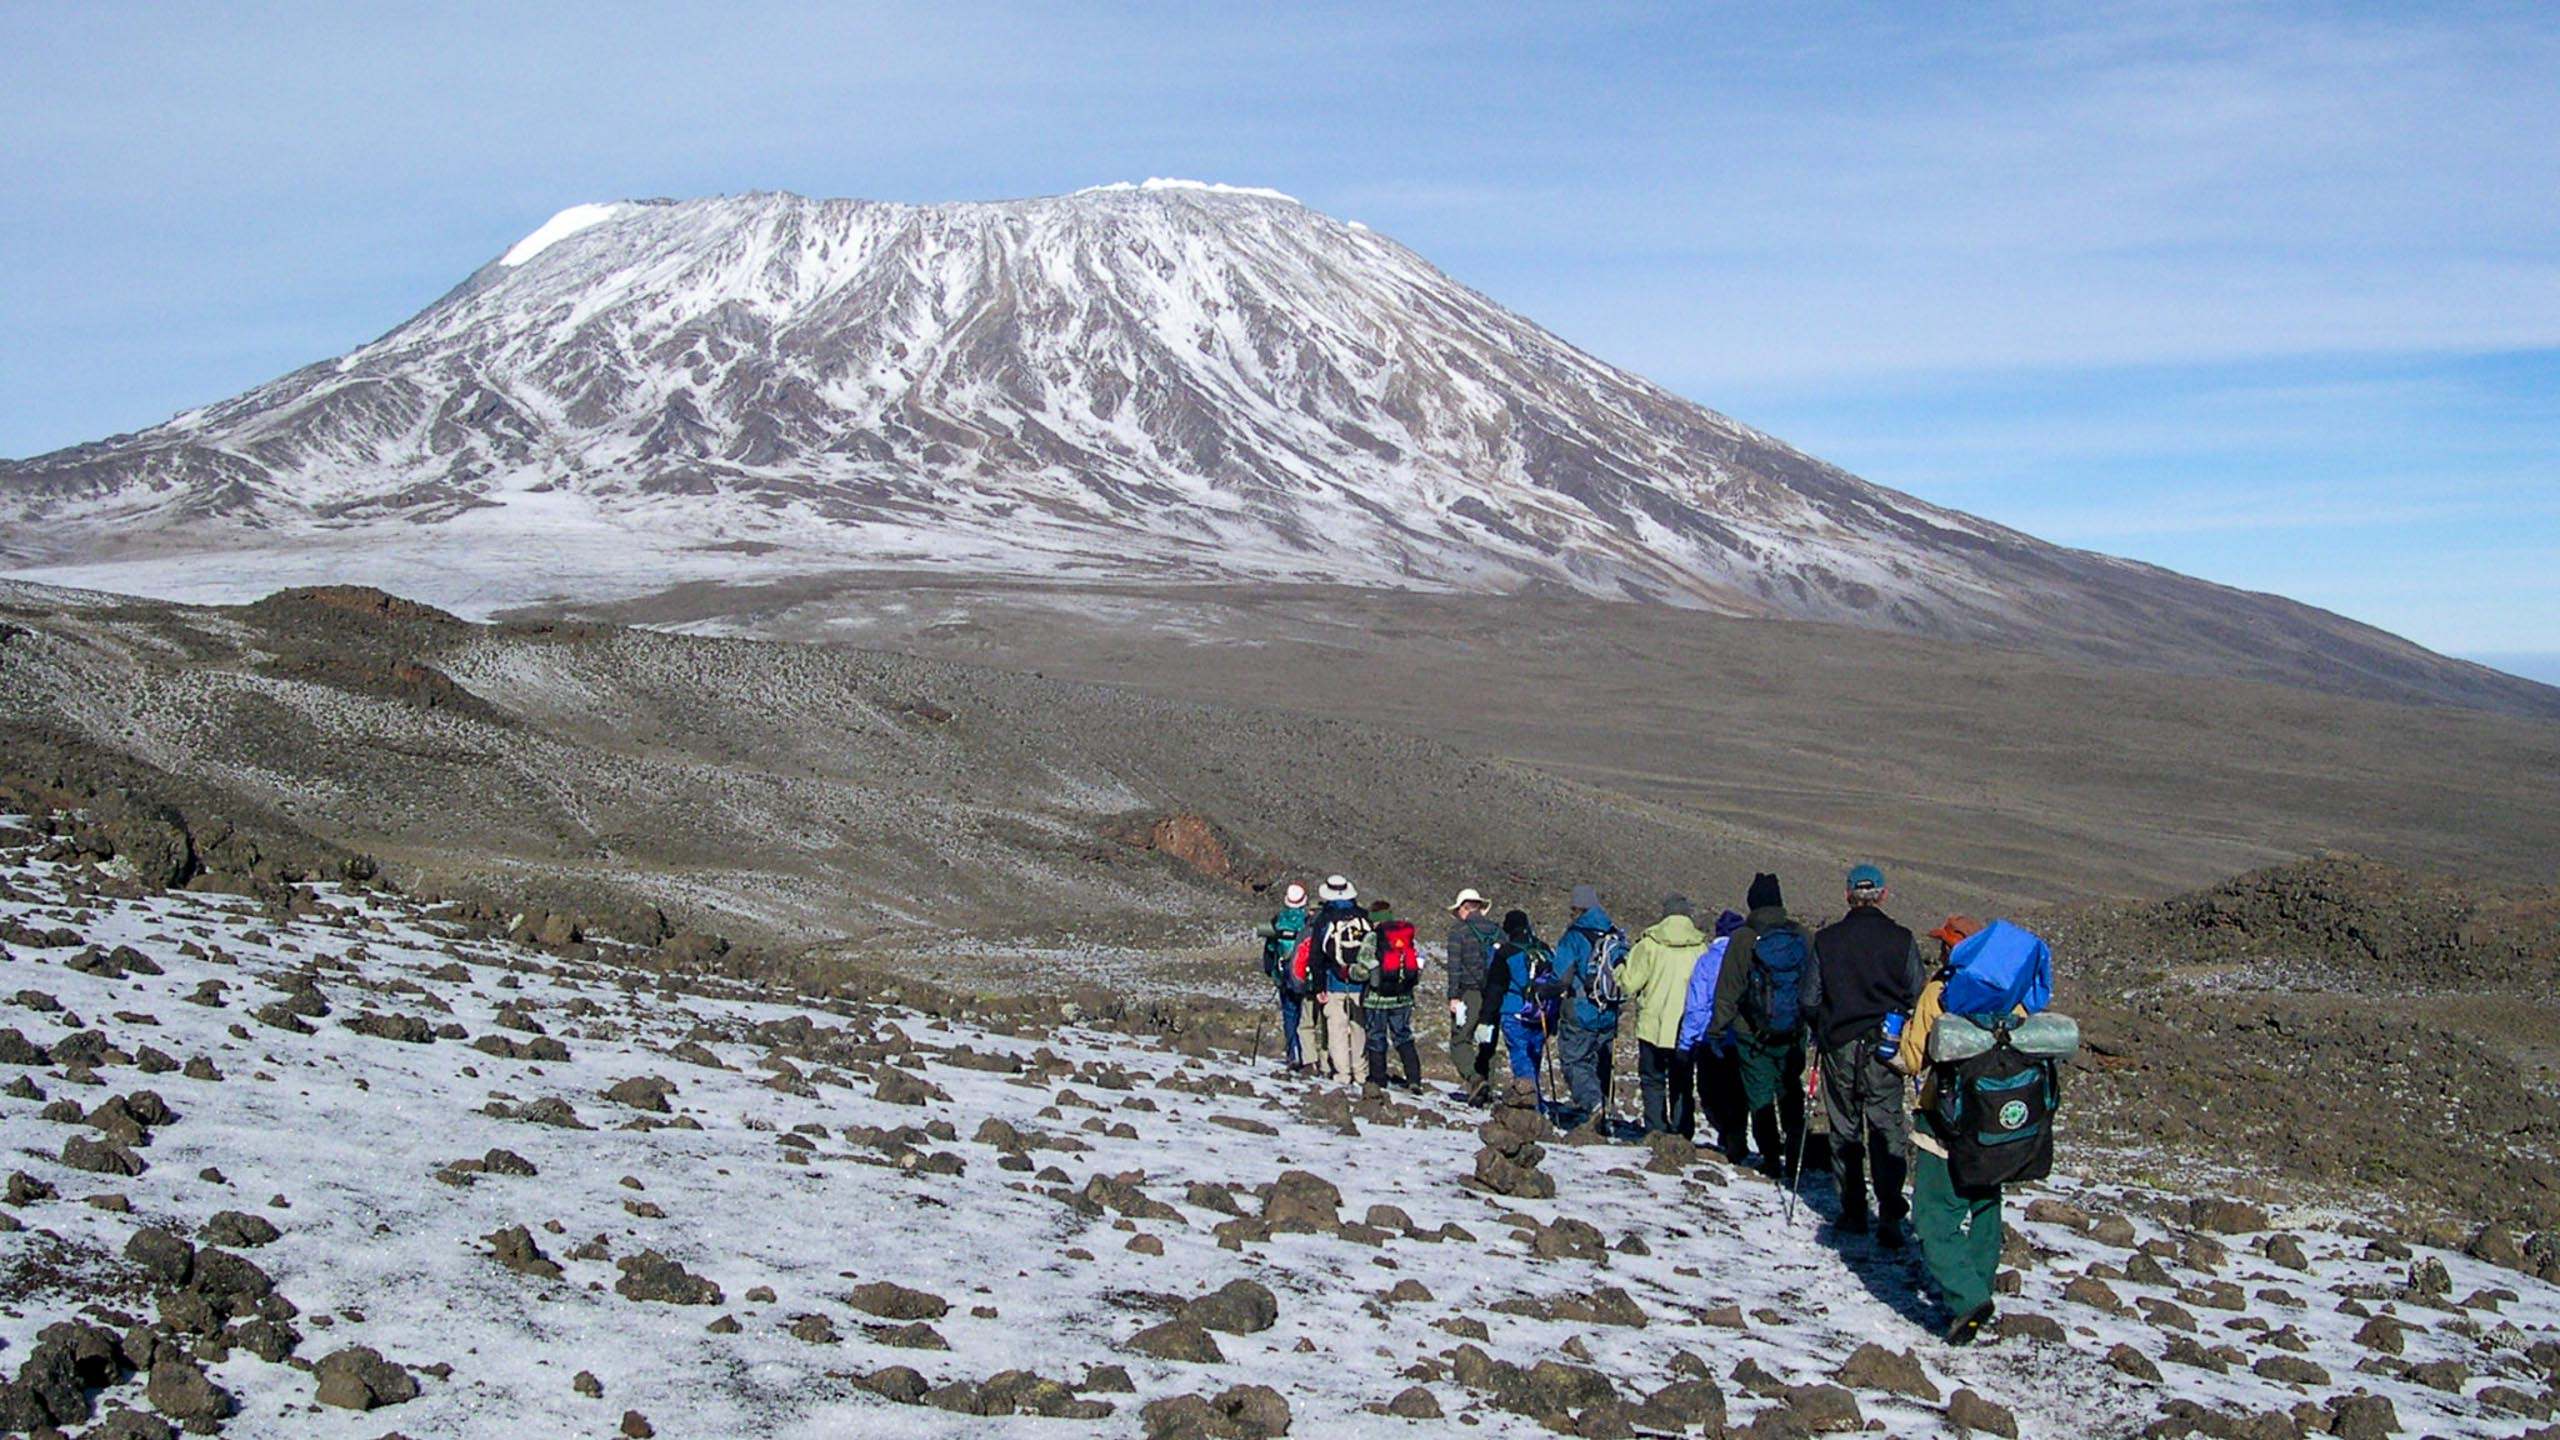 Group of travelers hike toward Mt Kilimanjaro